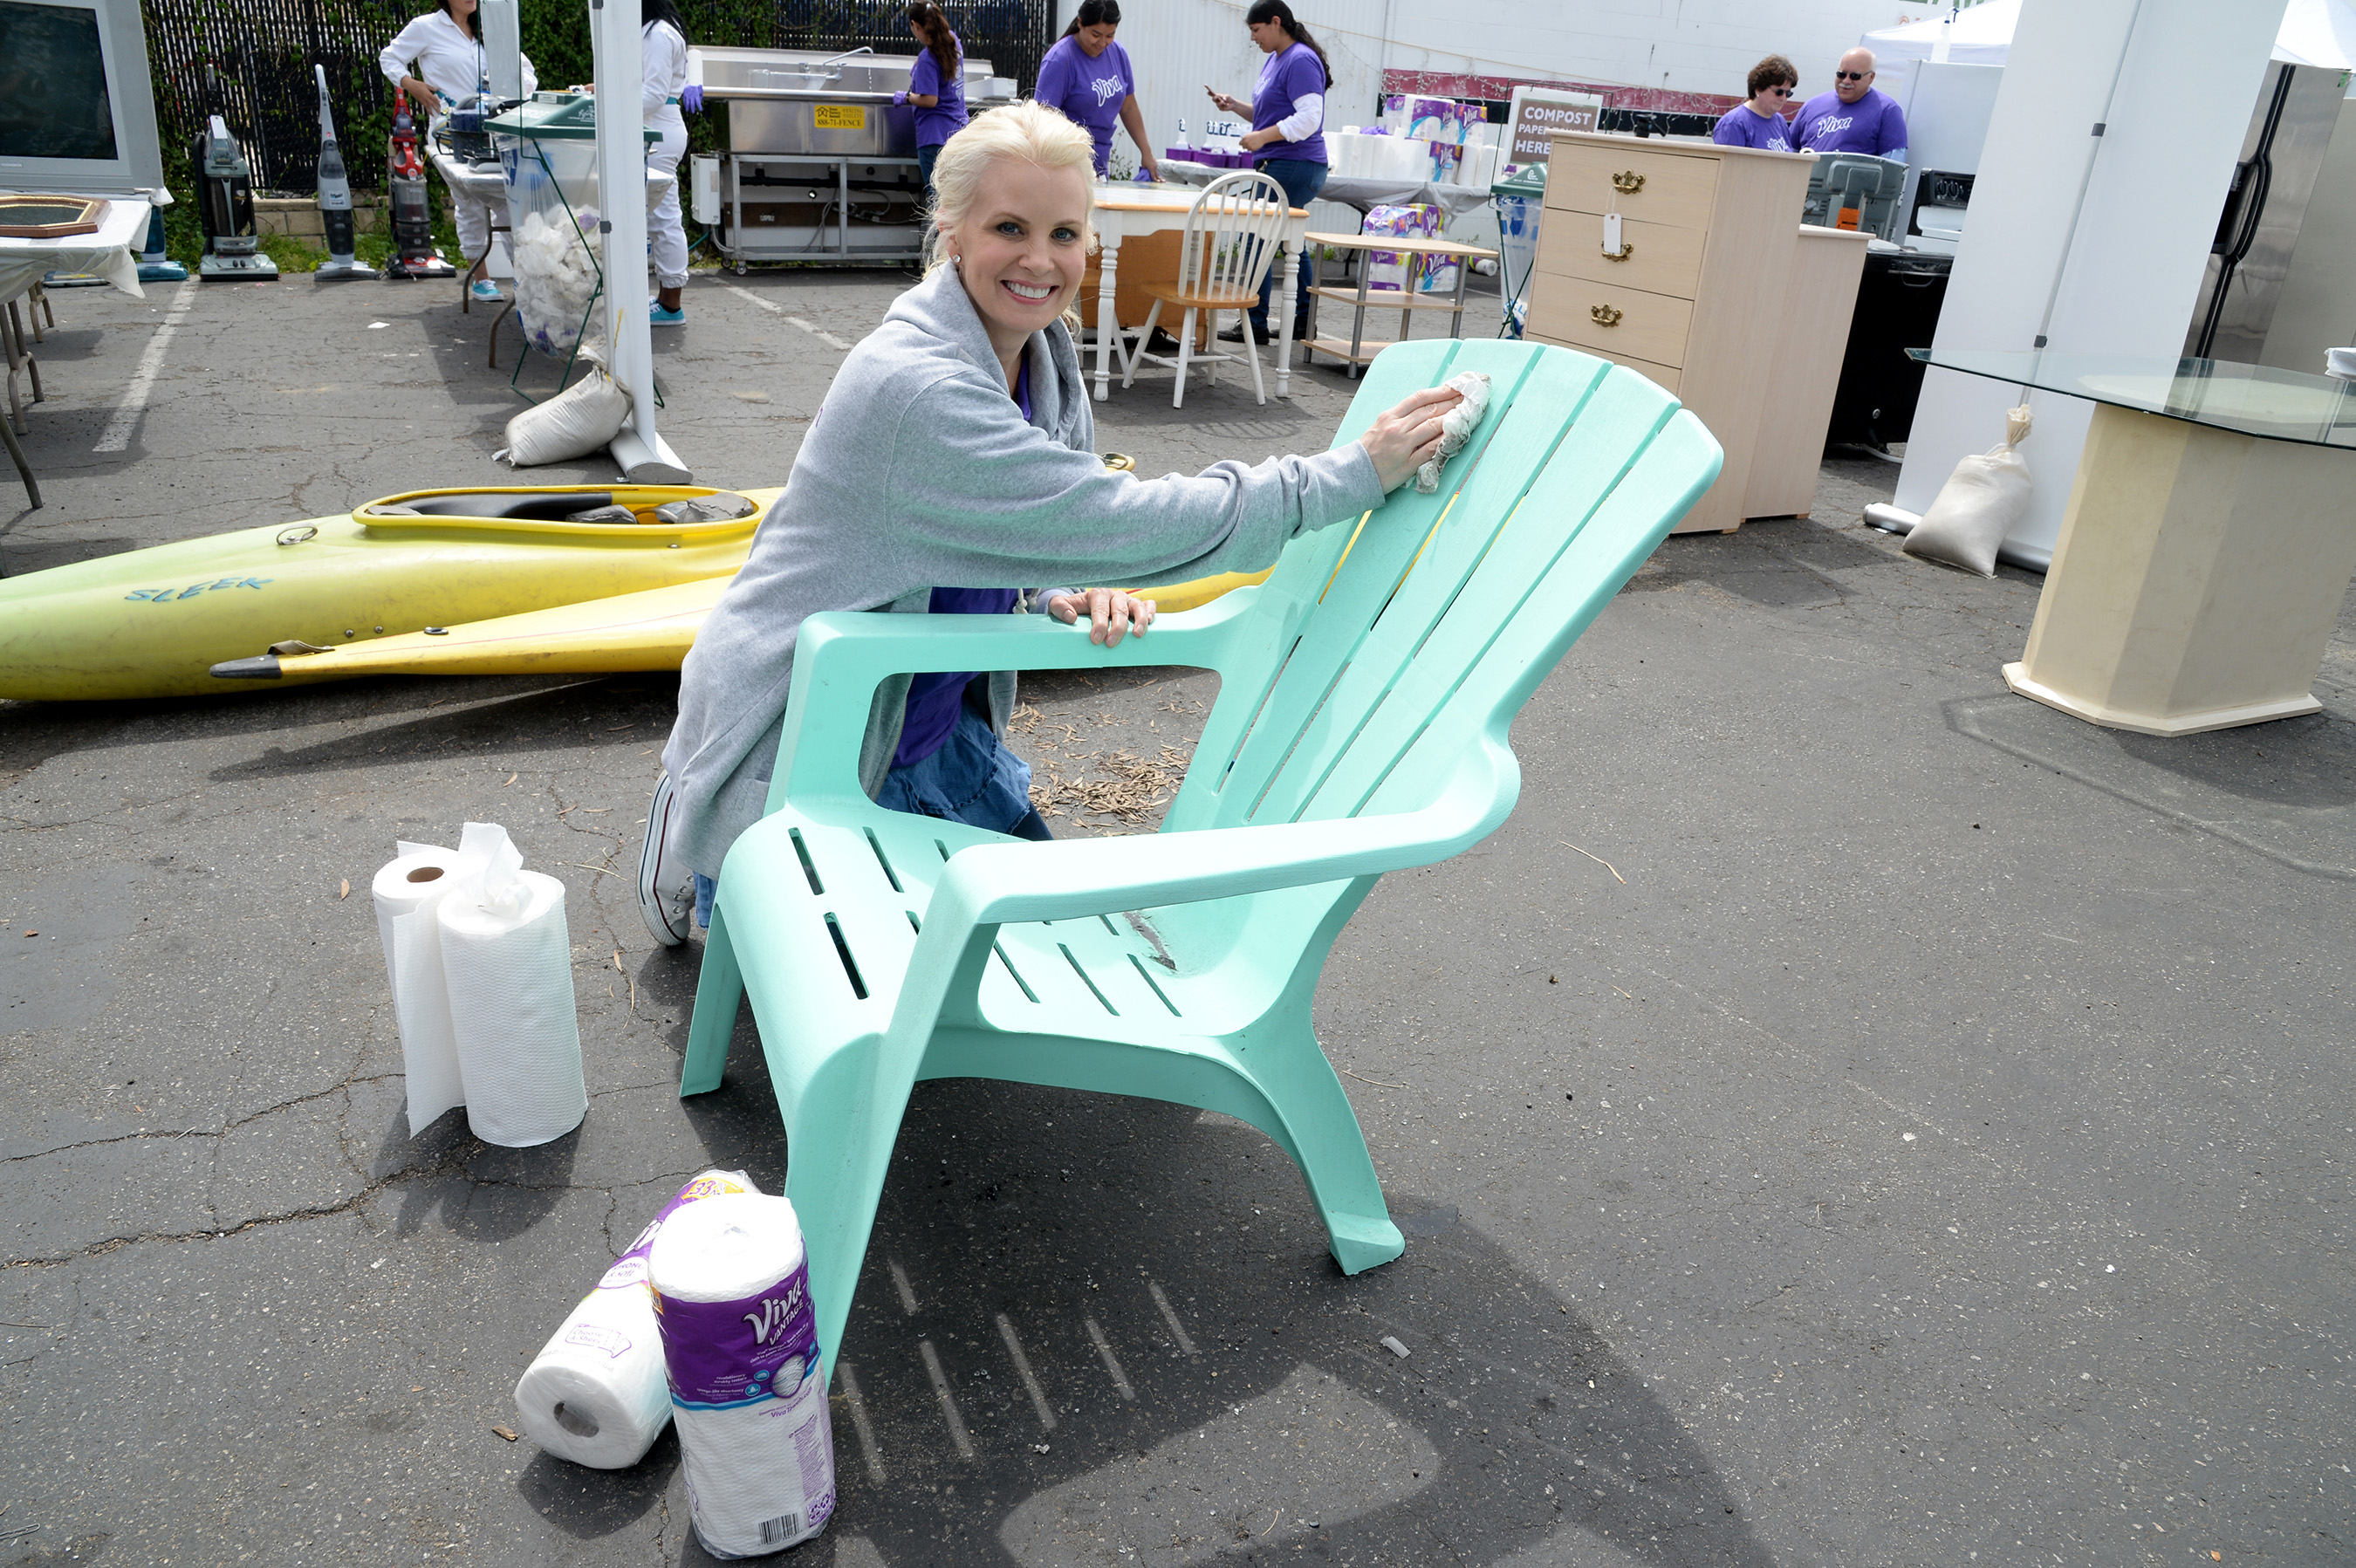 VENTURA, CALIFORNIA - APRIL 06: Actress and home/DIY expert Monica Potter teams up with Viva Towels and the Boys and Girls Club of Greater Ventura to unleash clean on donated furniture, electronics and appliances, then give them to families in need at Avenue Thrift & Vintage on April 6, 2016 in Ventura, California. (Photo by Michael Kovac/Getty Images for Viva (Kimberly-Clark))